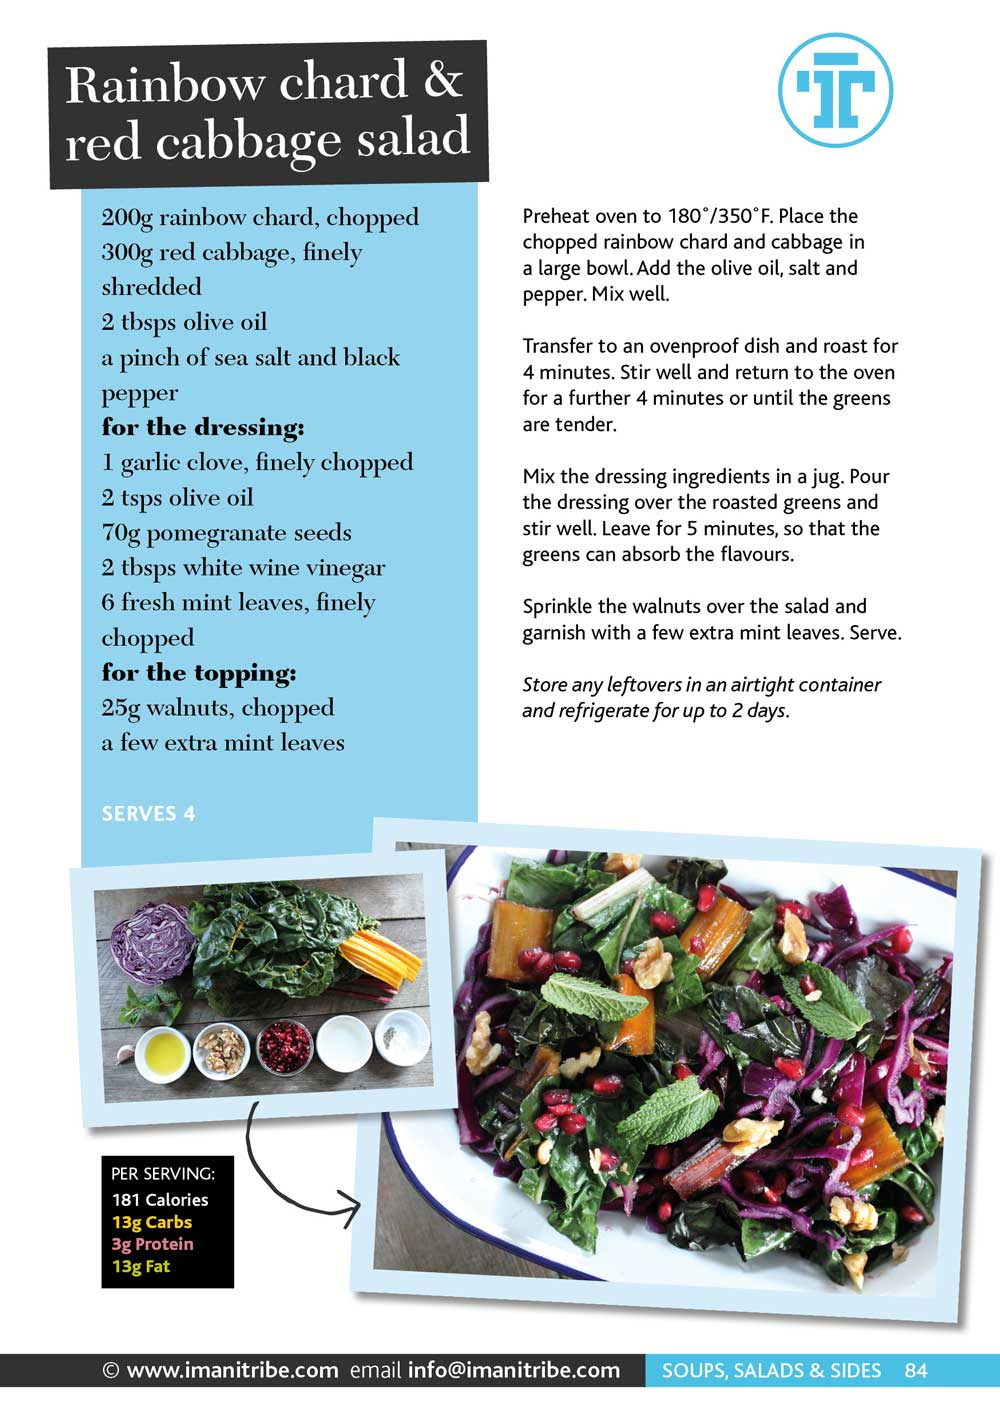 rainbow-chard-and-red-red-cabbage-salad